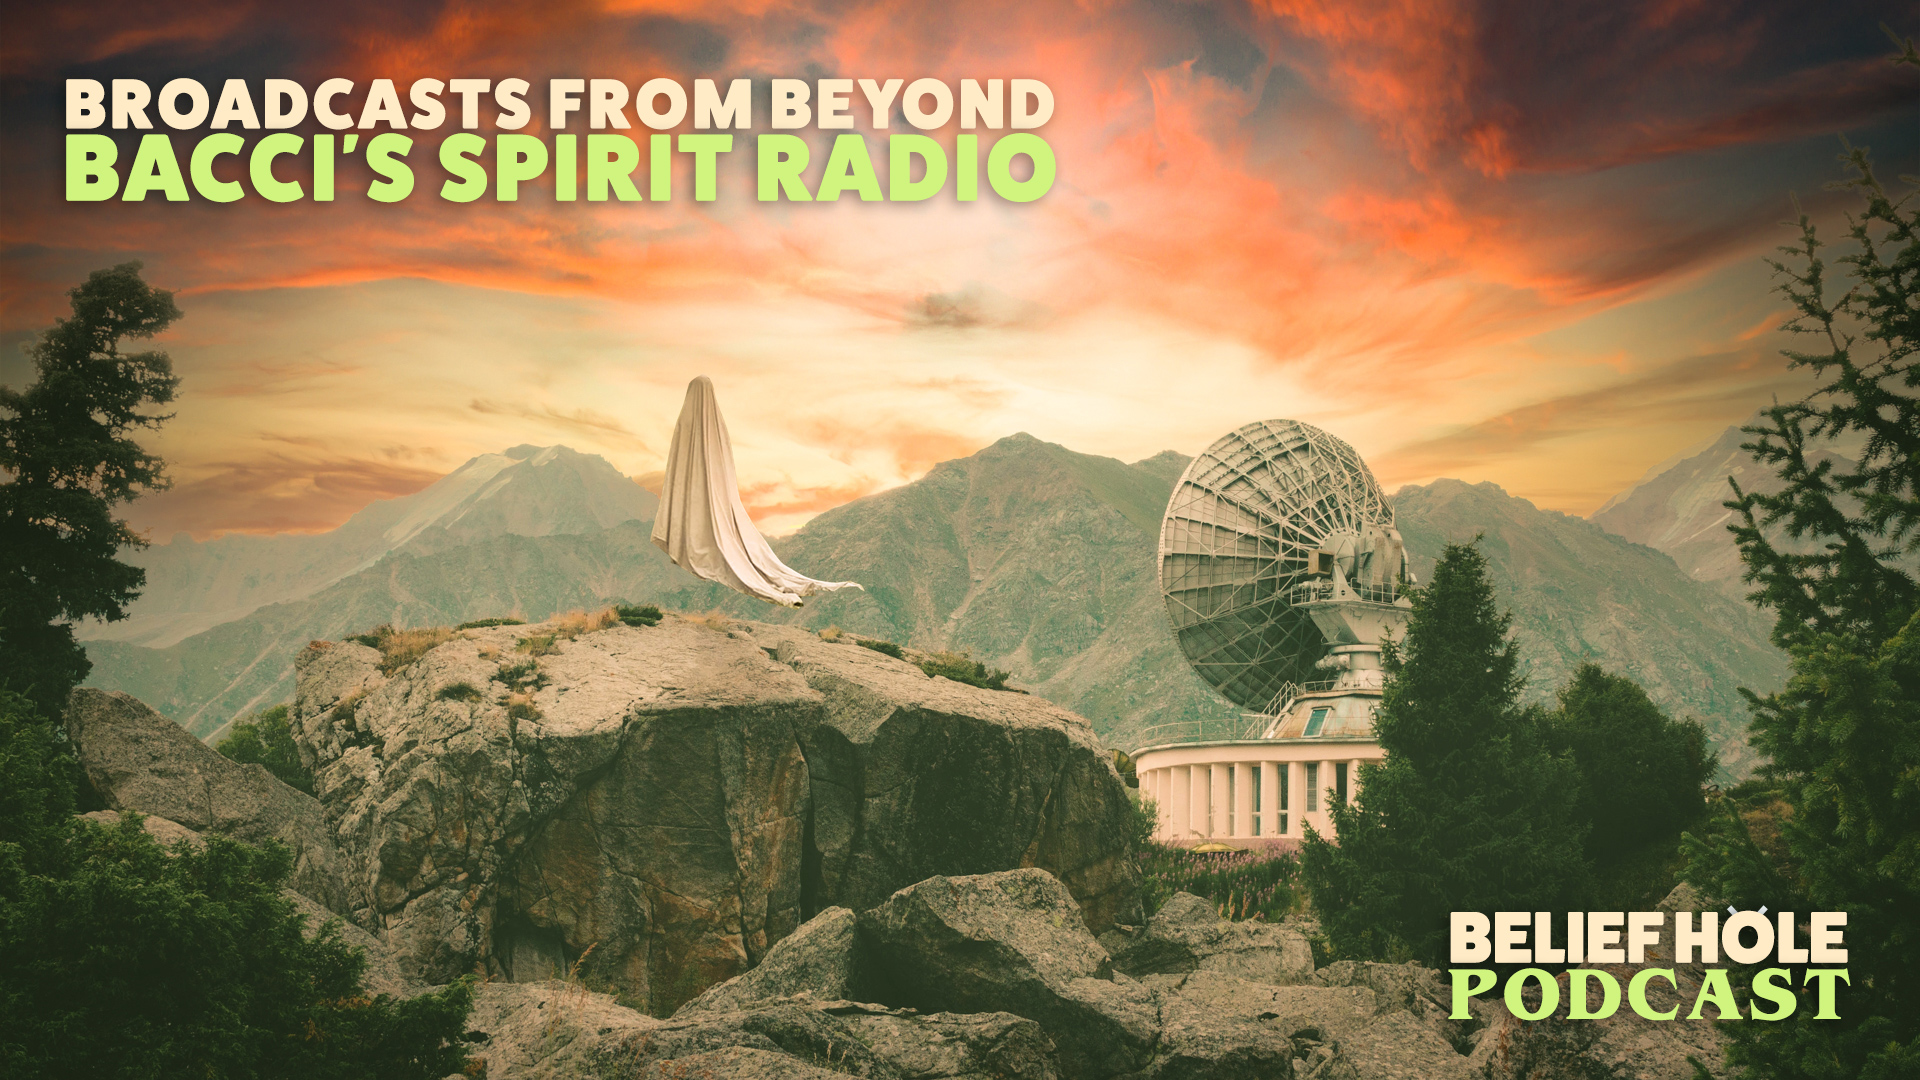 3.04 | Broadcasts from the Beyond, ITC and Marcello Bacci's Spirit Radio